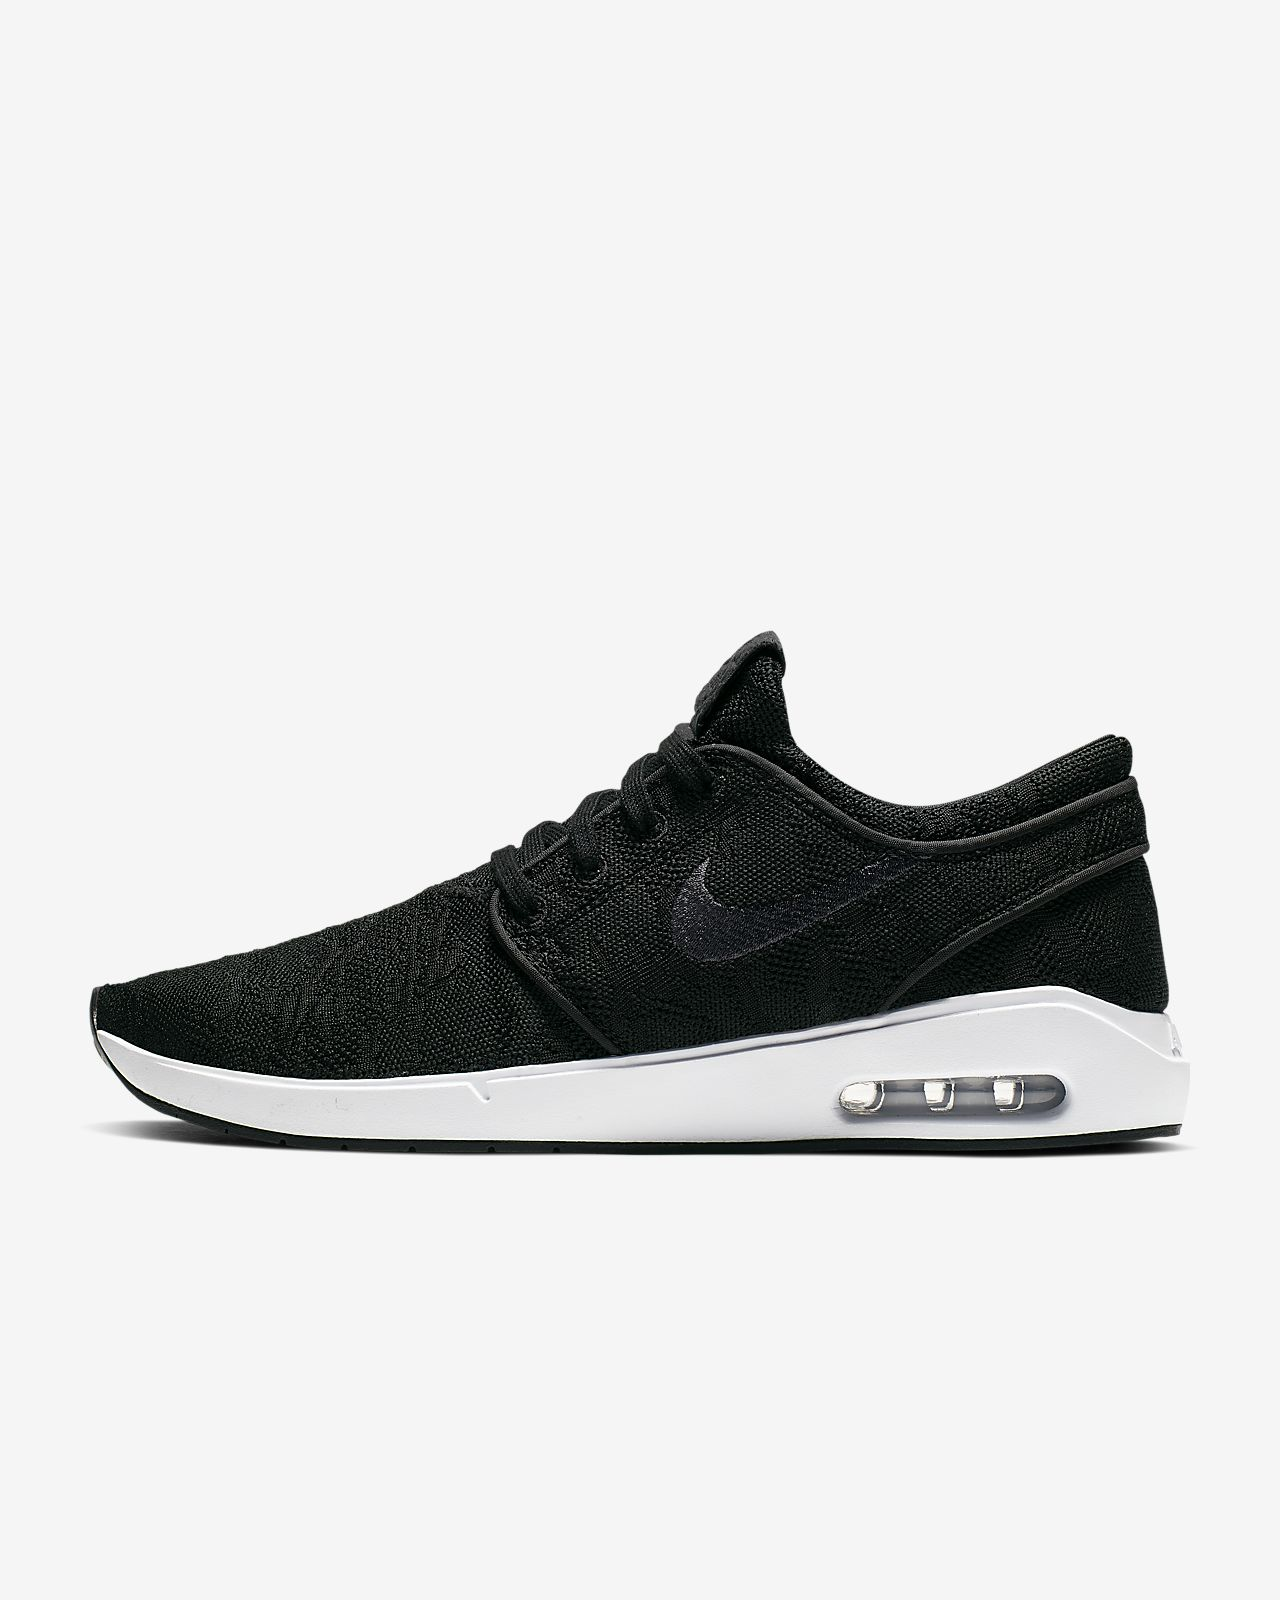 0be36df7bc7c Nike SB Air Max Janoski 2 Men s Skate Shoe. Nike.com CA